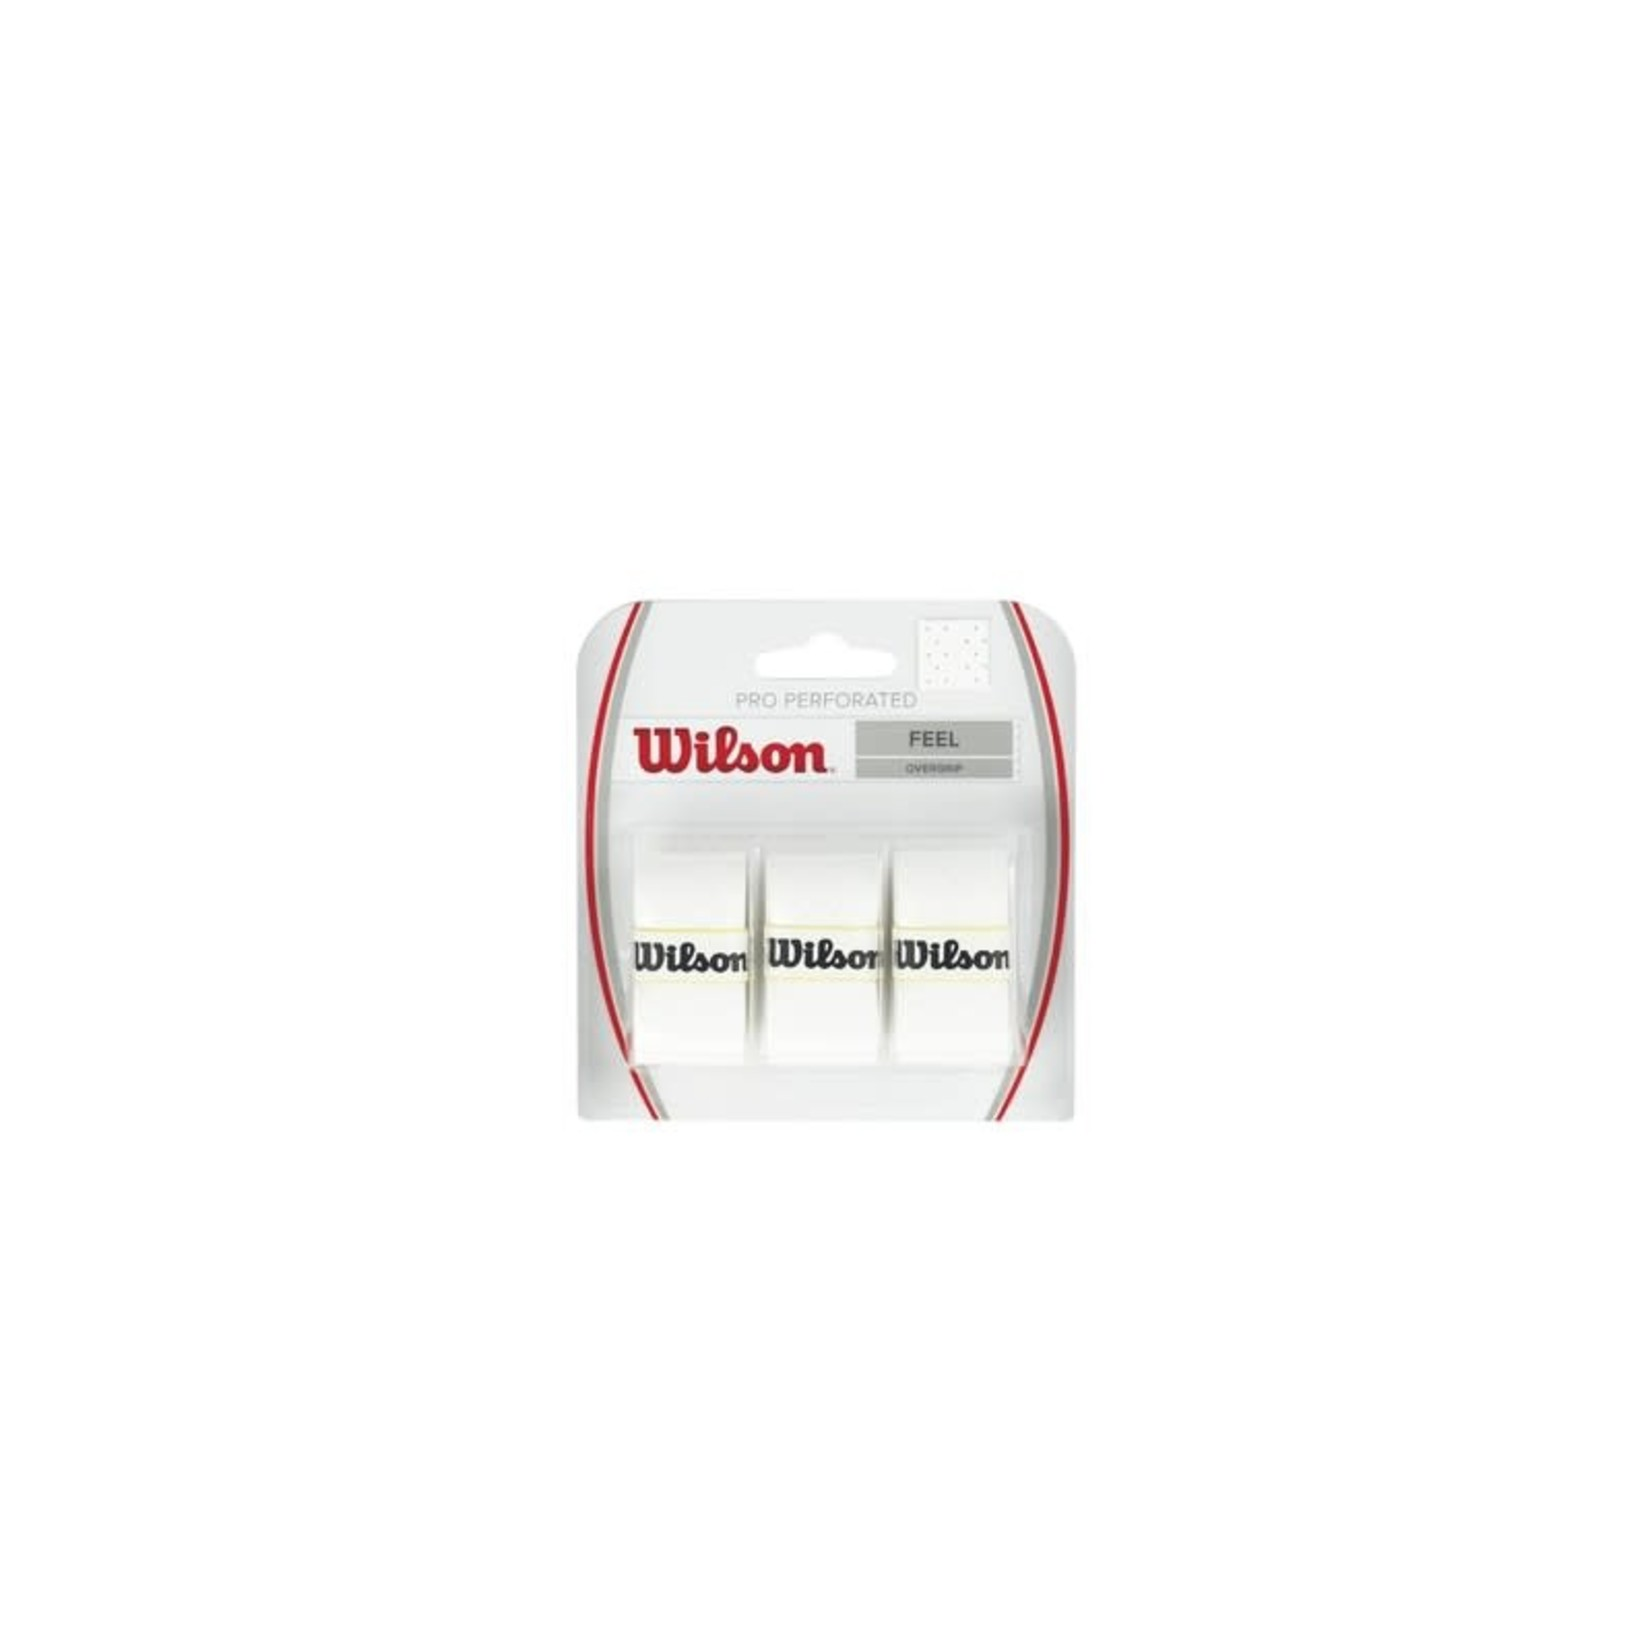 Wilson Pro OverGrip Perforated Wit